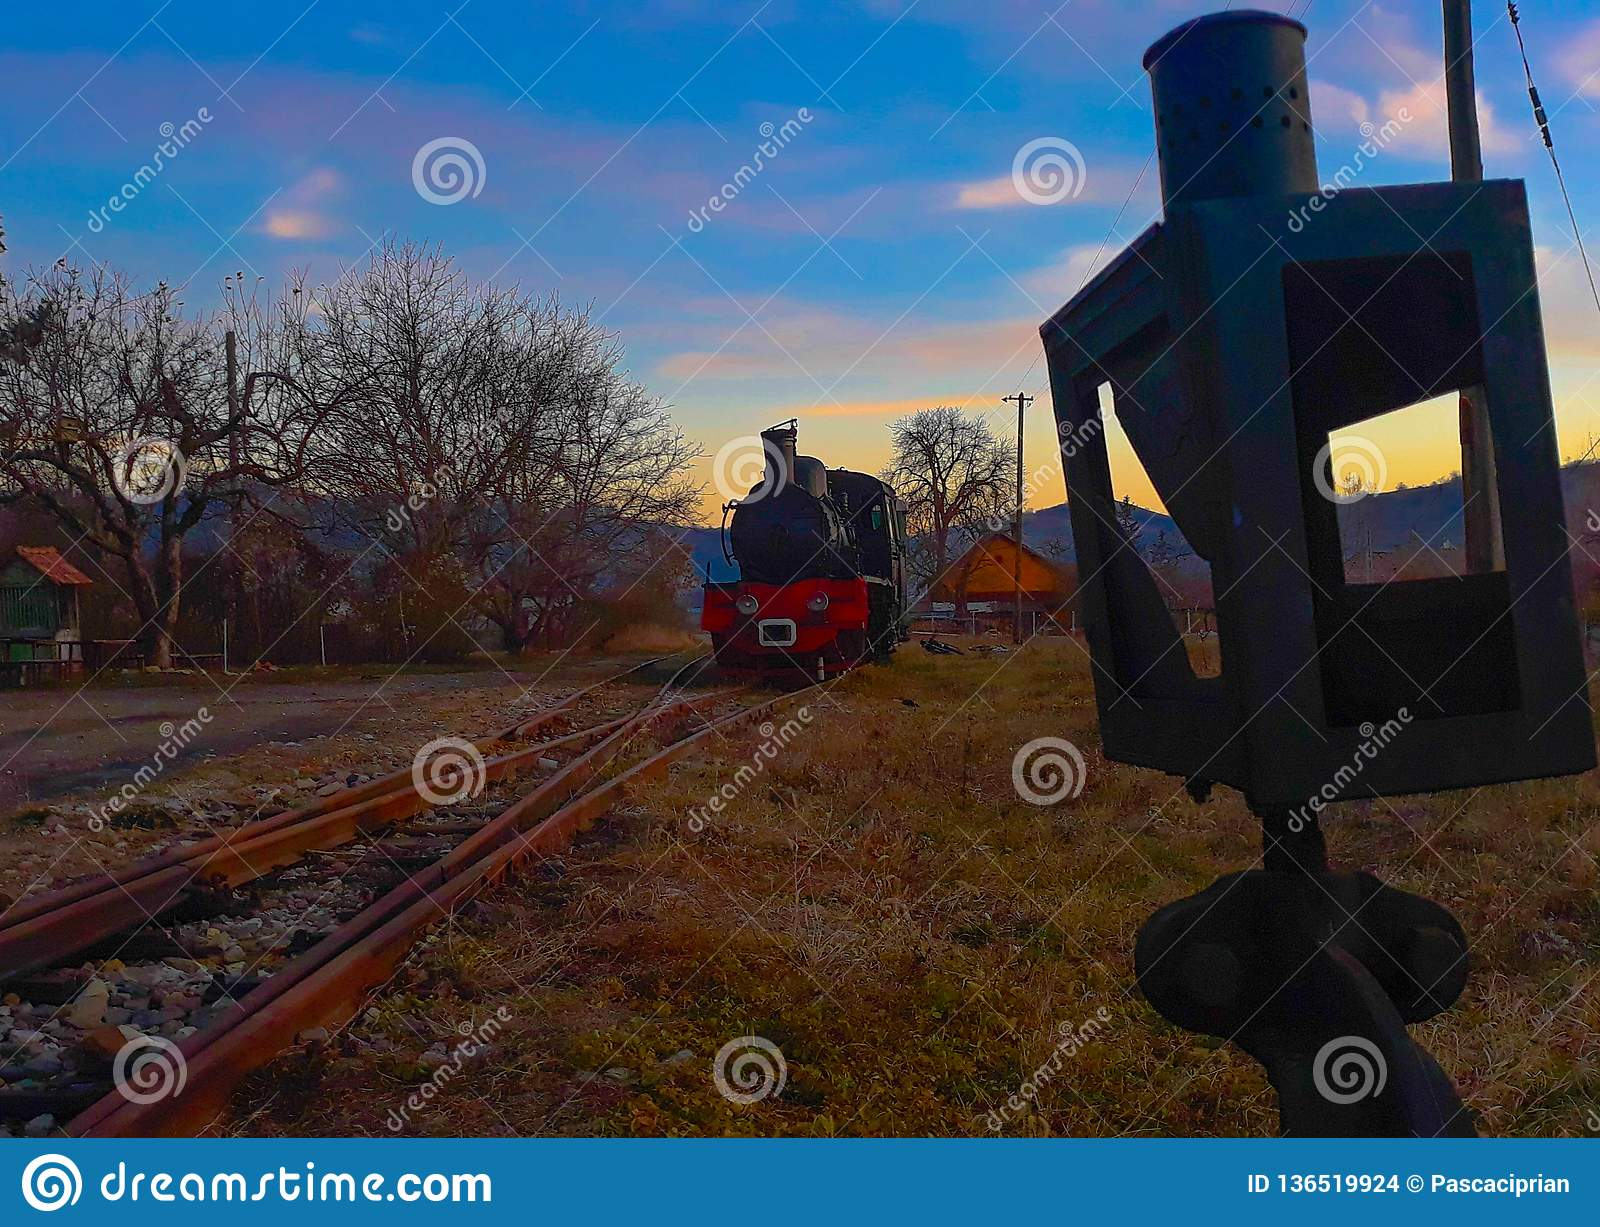 The train and the lever